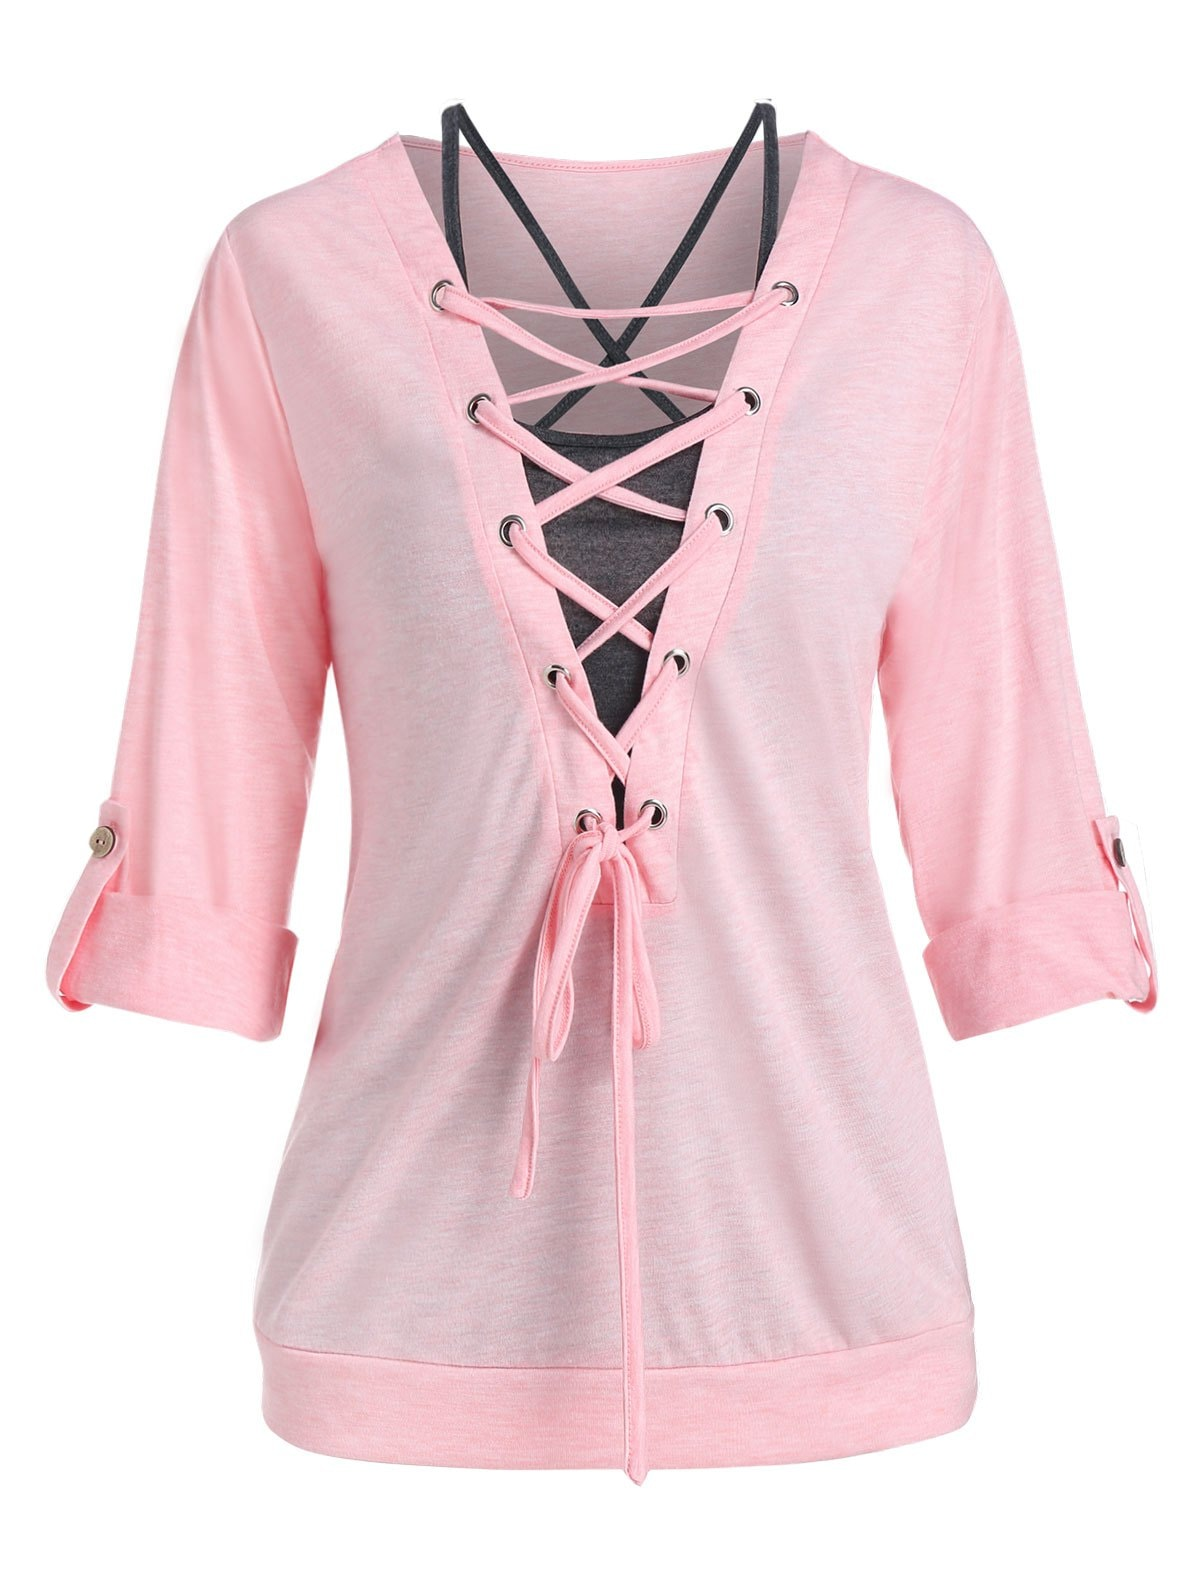 Roll Tab Sleeve Lace Up T Shirt and Crisscross Tank Top Set